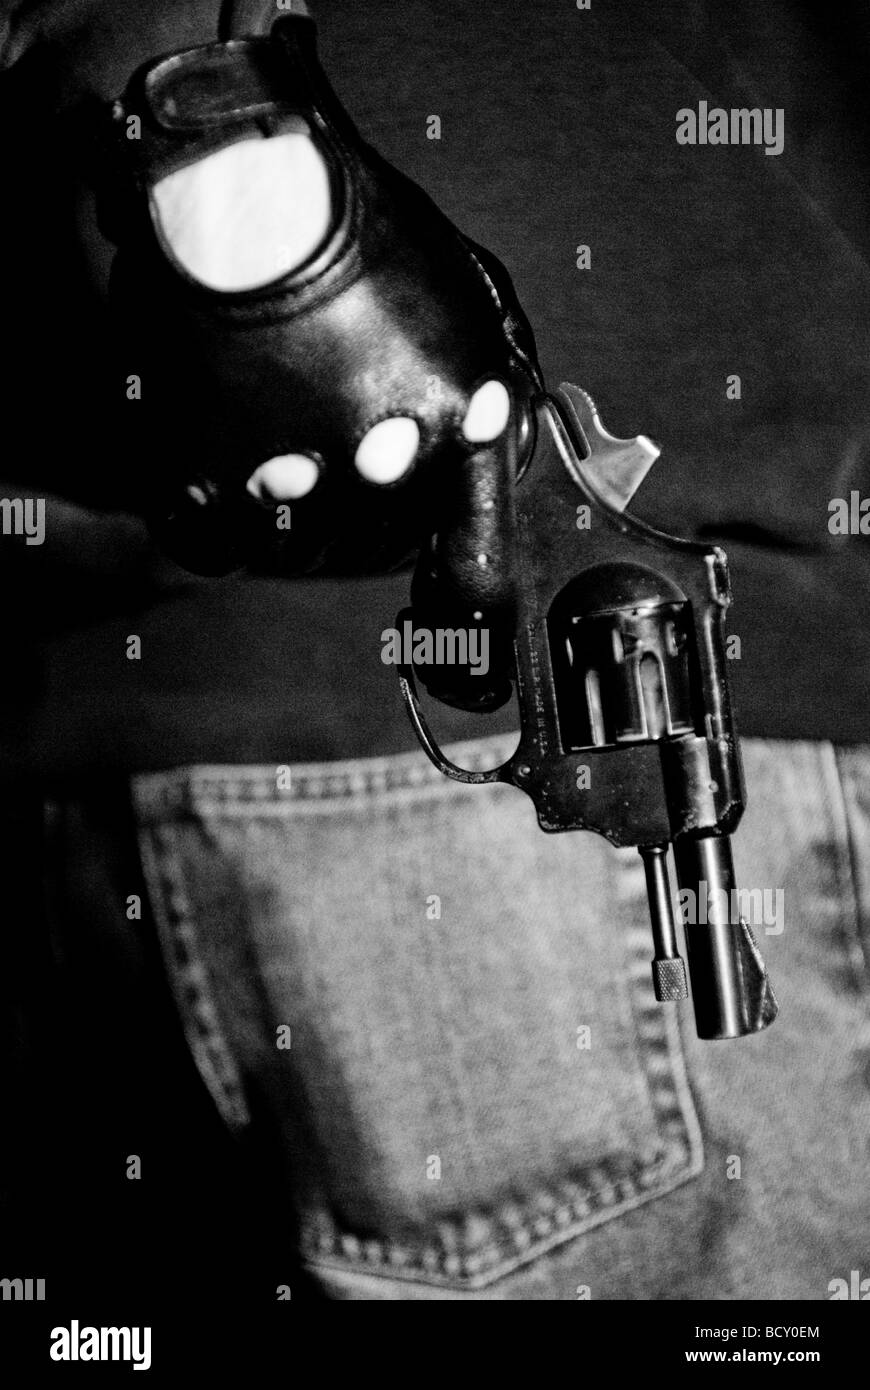 Assailant pulling out a gun - Stock Image